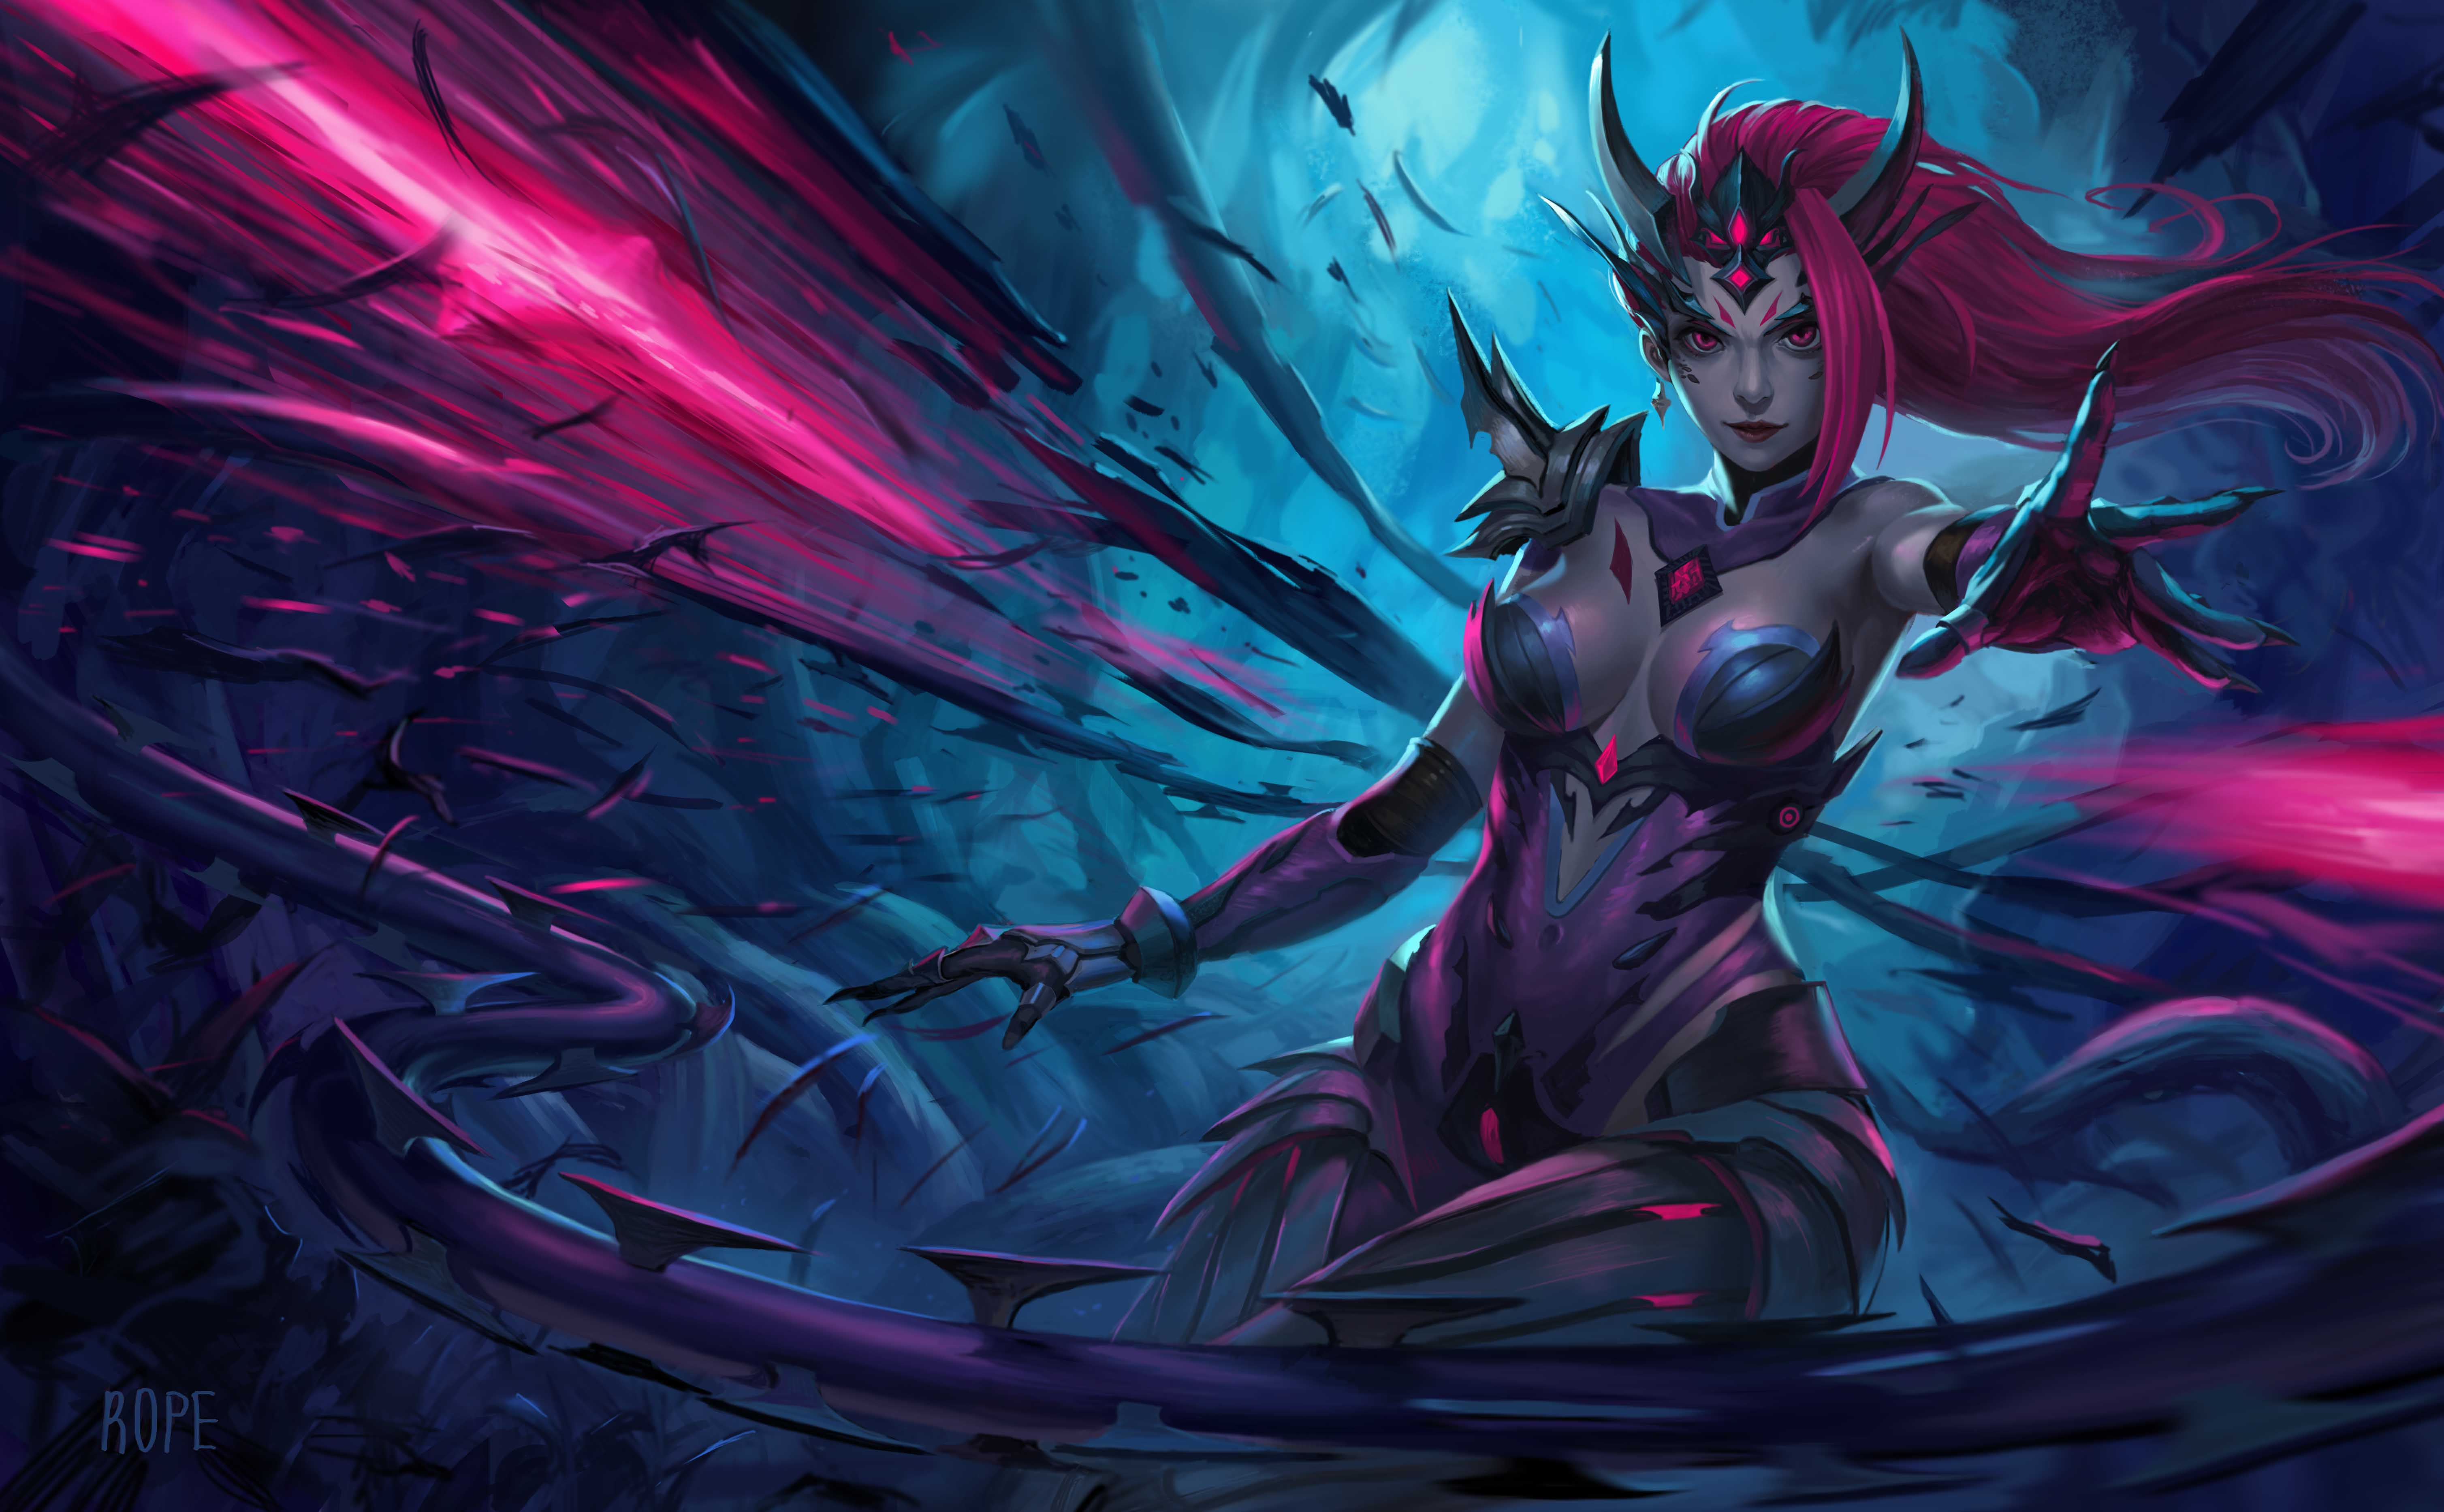 headhunter zyra fan art league of legends wallpapers. Black Bedroom Furniture Sets. Home Design Ideas